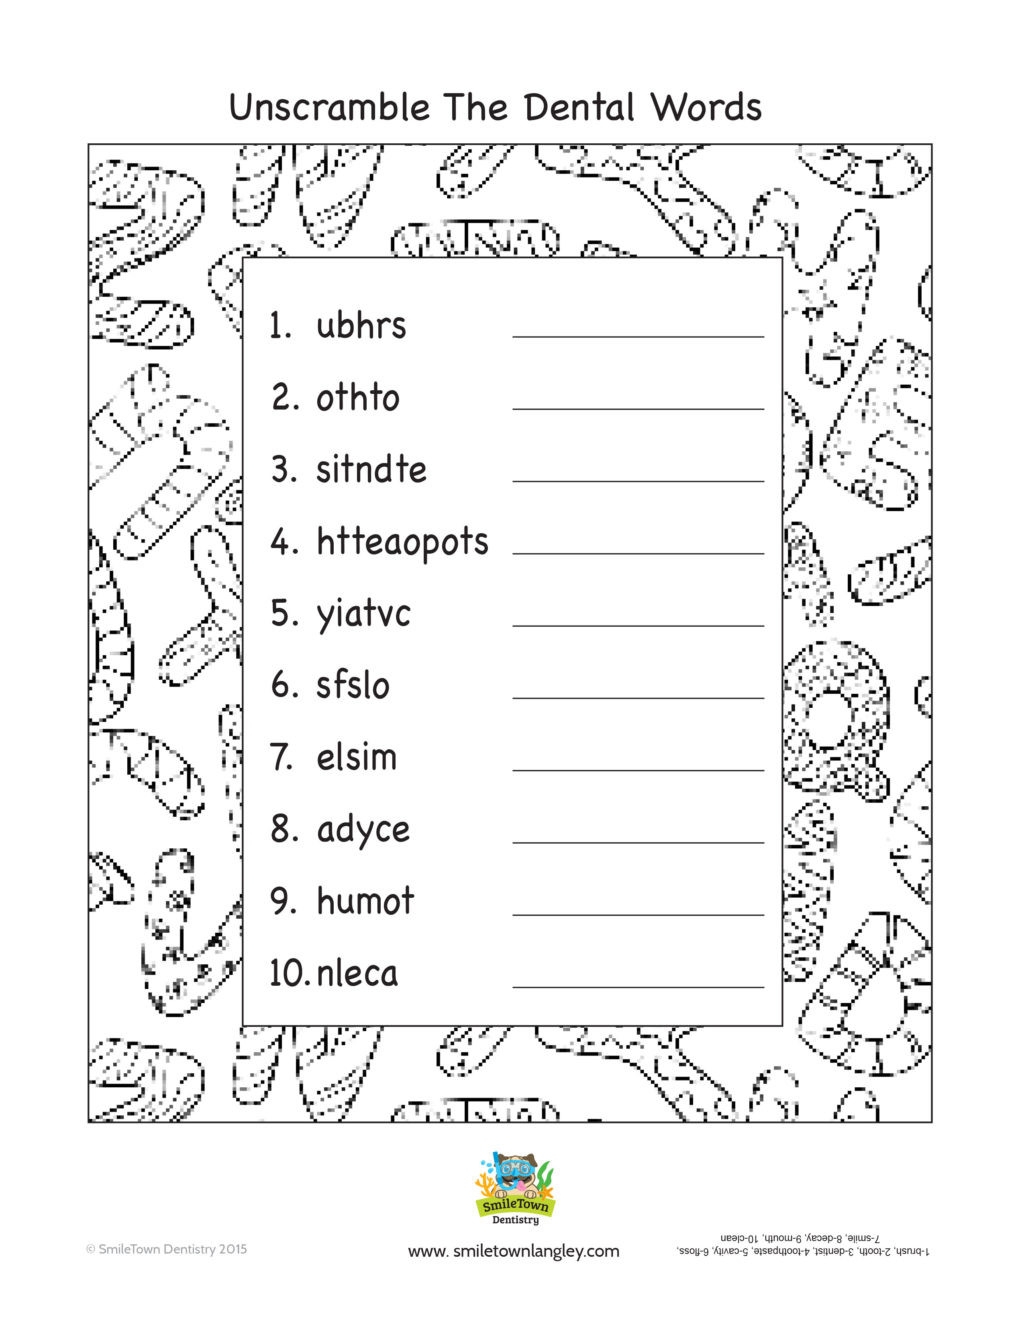 Free Printable Fire Safety Worksheets Worksheet Smile town Langley Kids Activity Book Free